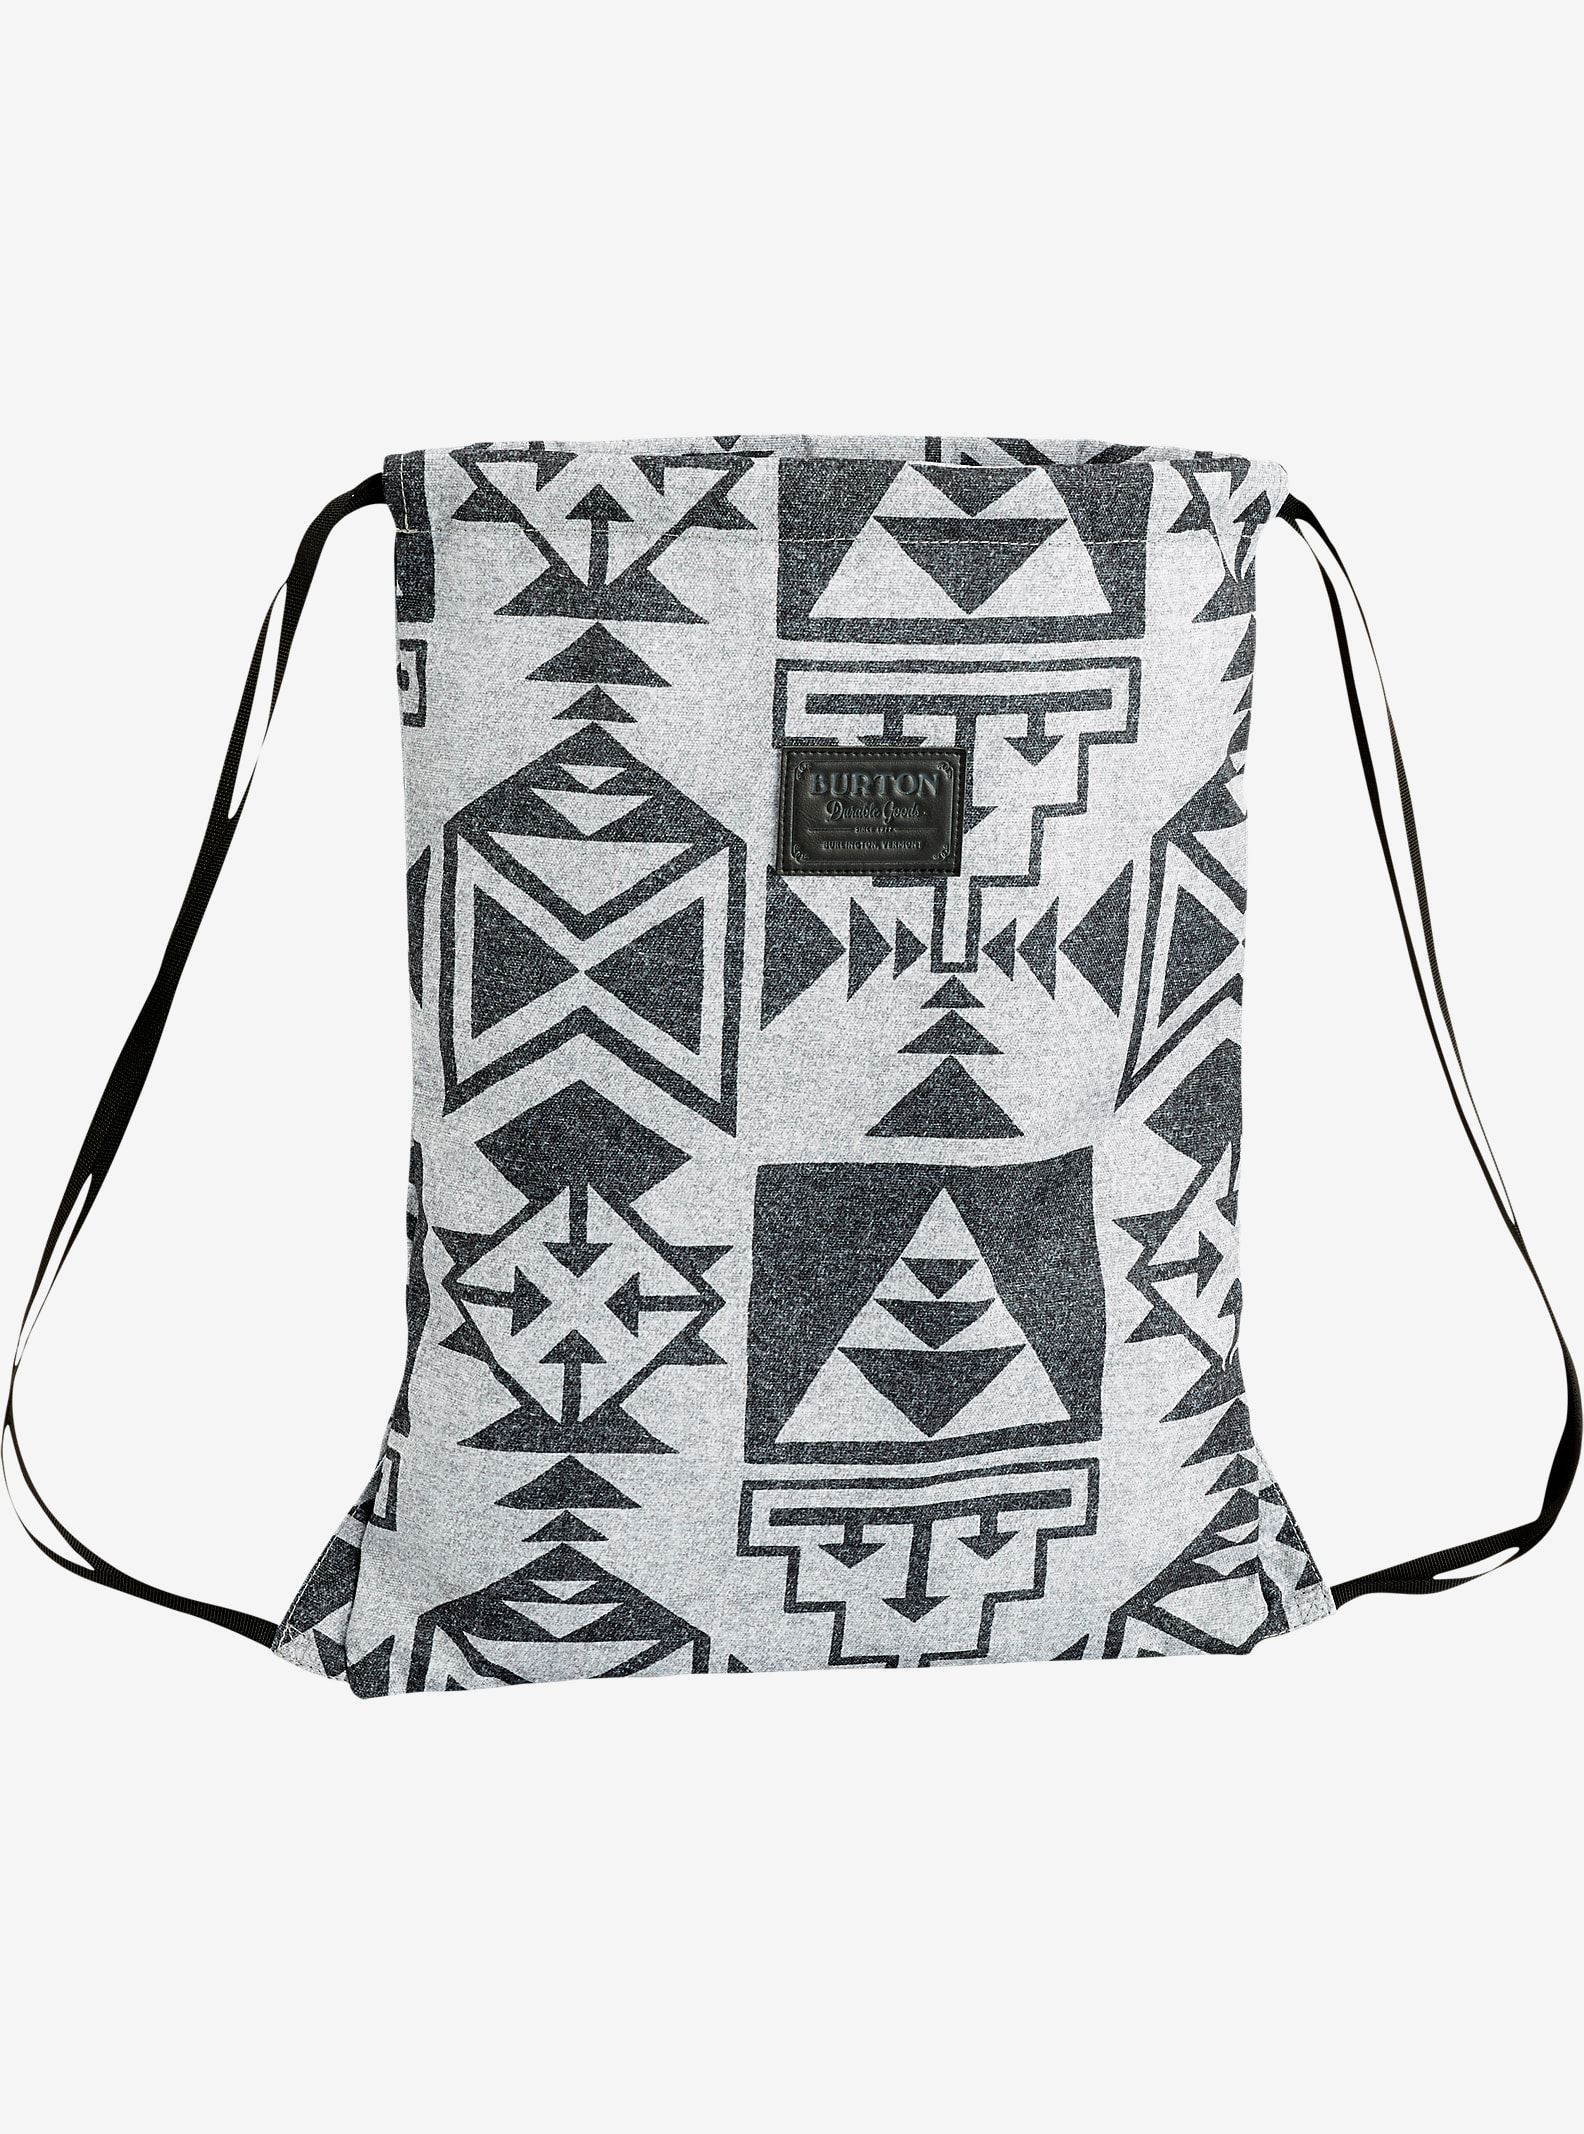 Burton Cinch Backpack shown in Neu Nordic Print